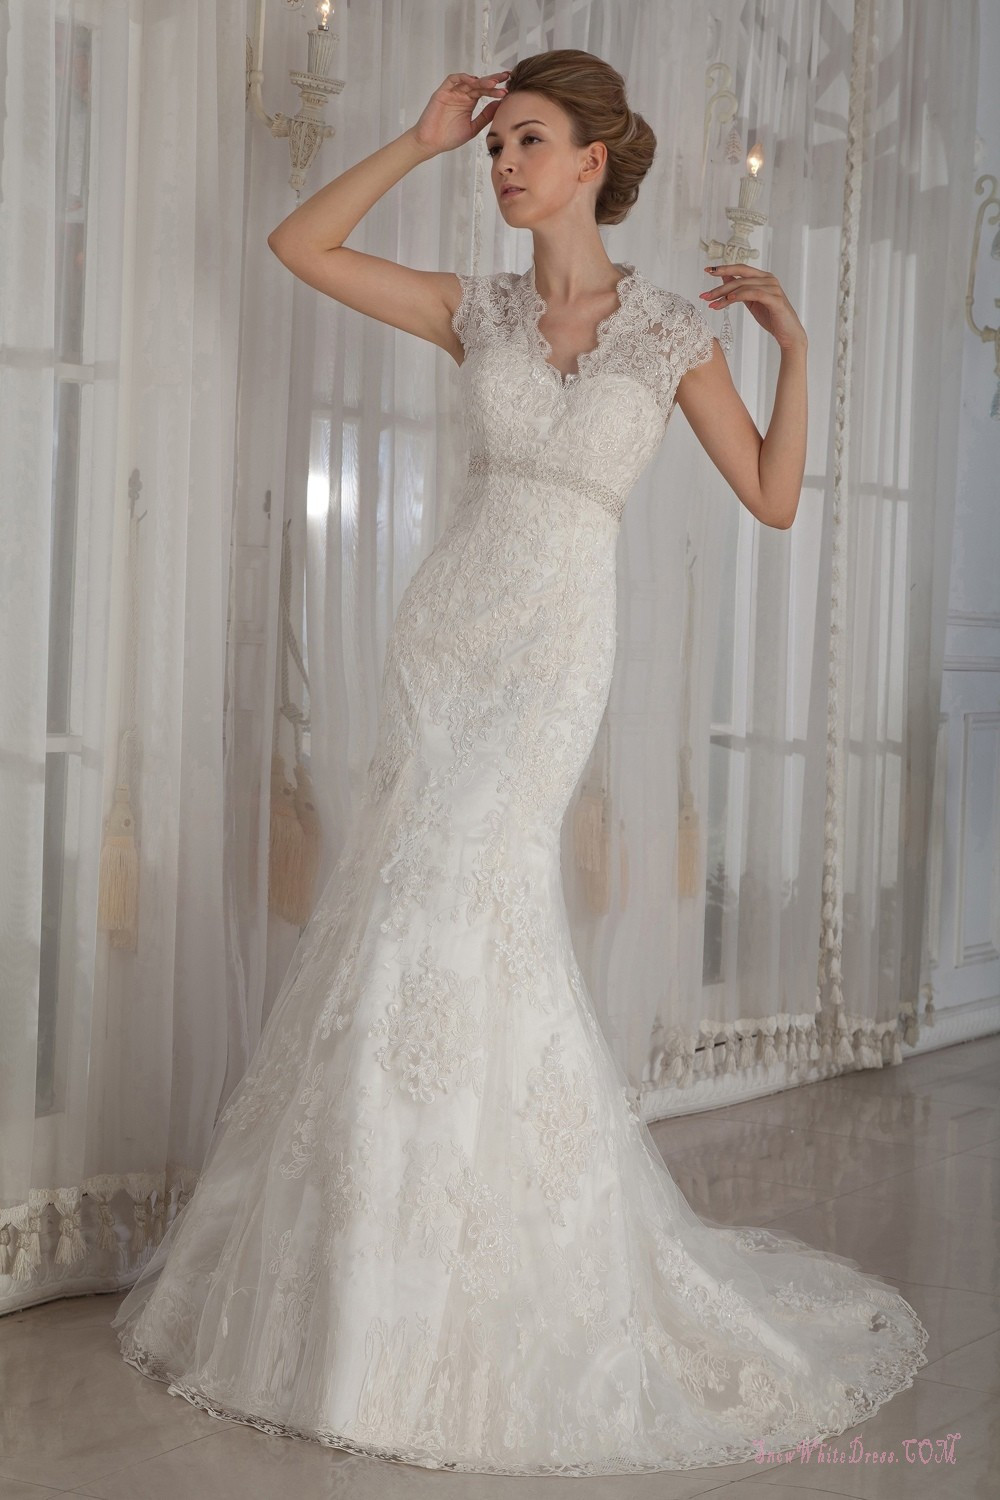 Compare Prices on Modern Vintage Wedding Gowns- Online Shopping ...